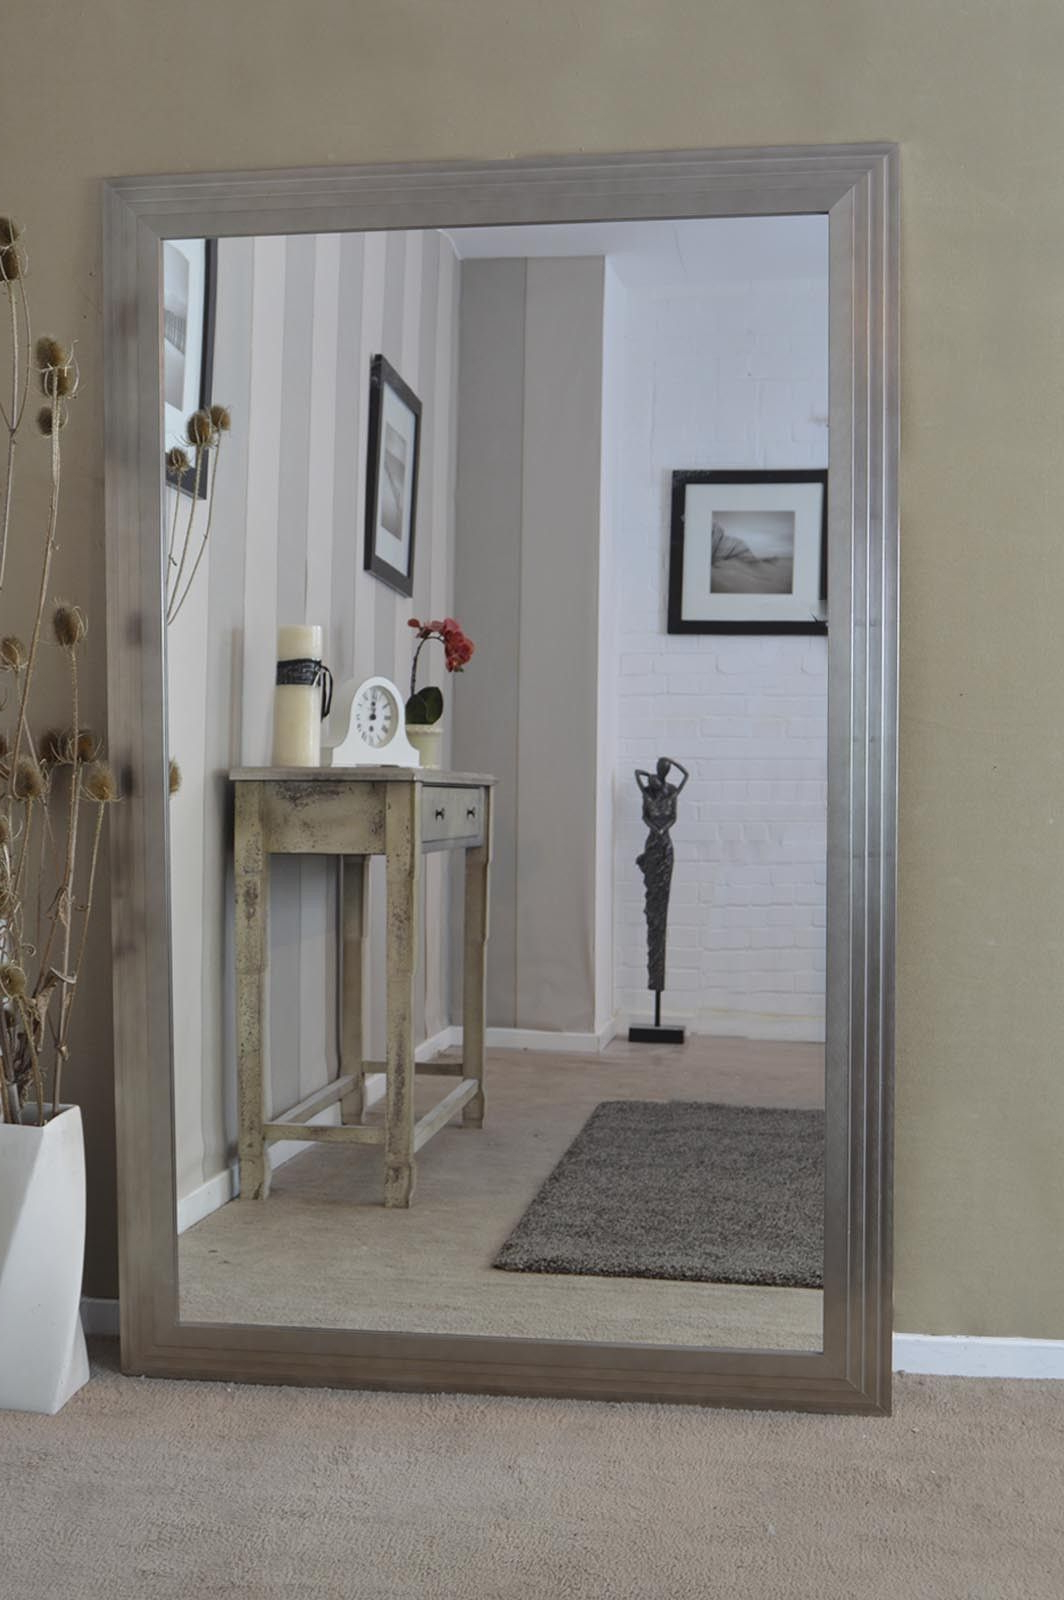 Widely Used Oversized Wall Mirrors Inside Extra Wide Wall Mirror (View 3 of 20)